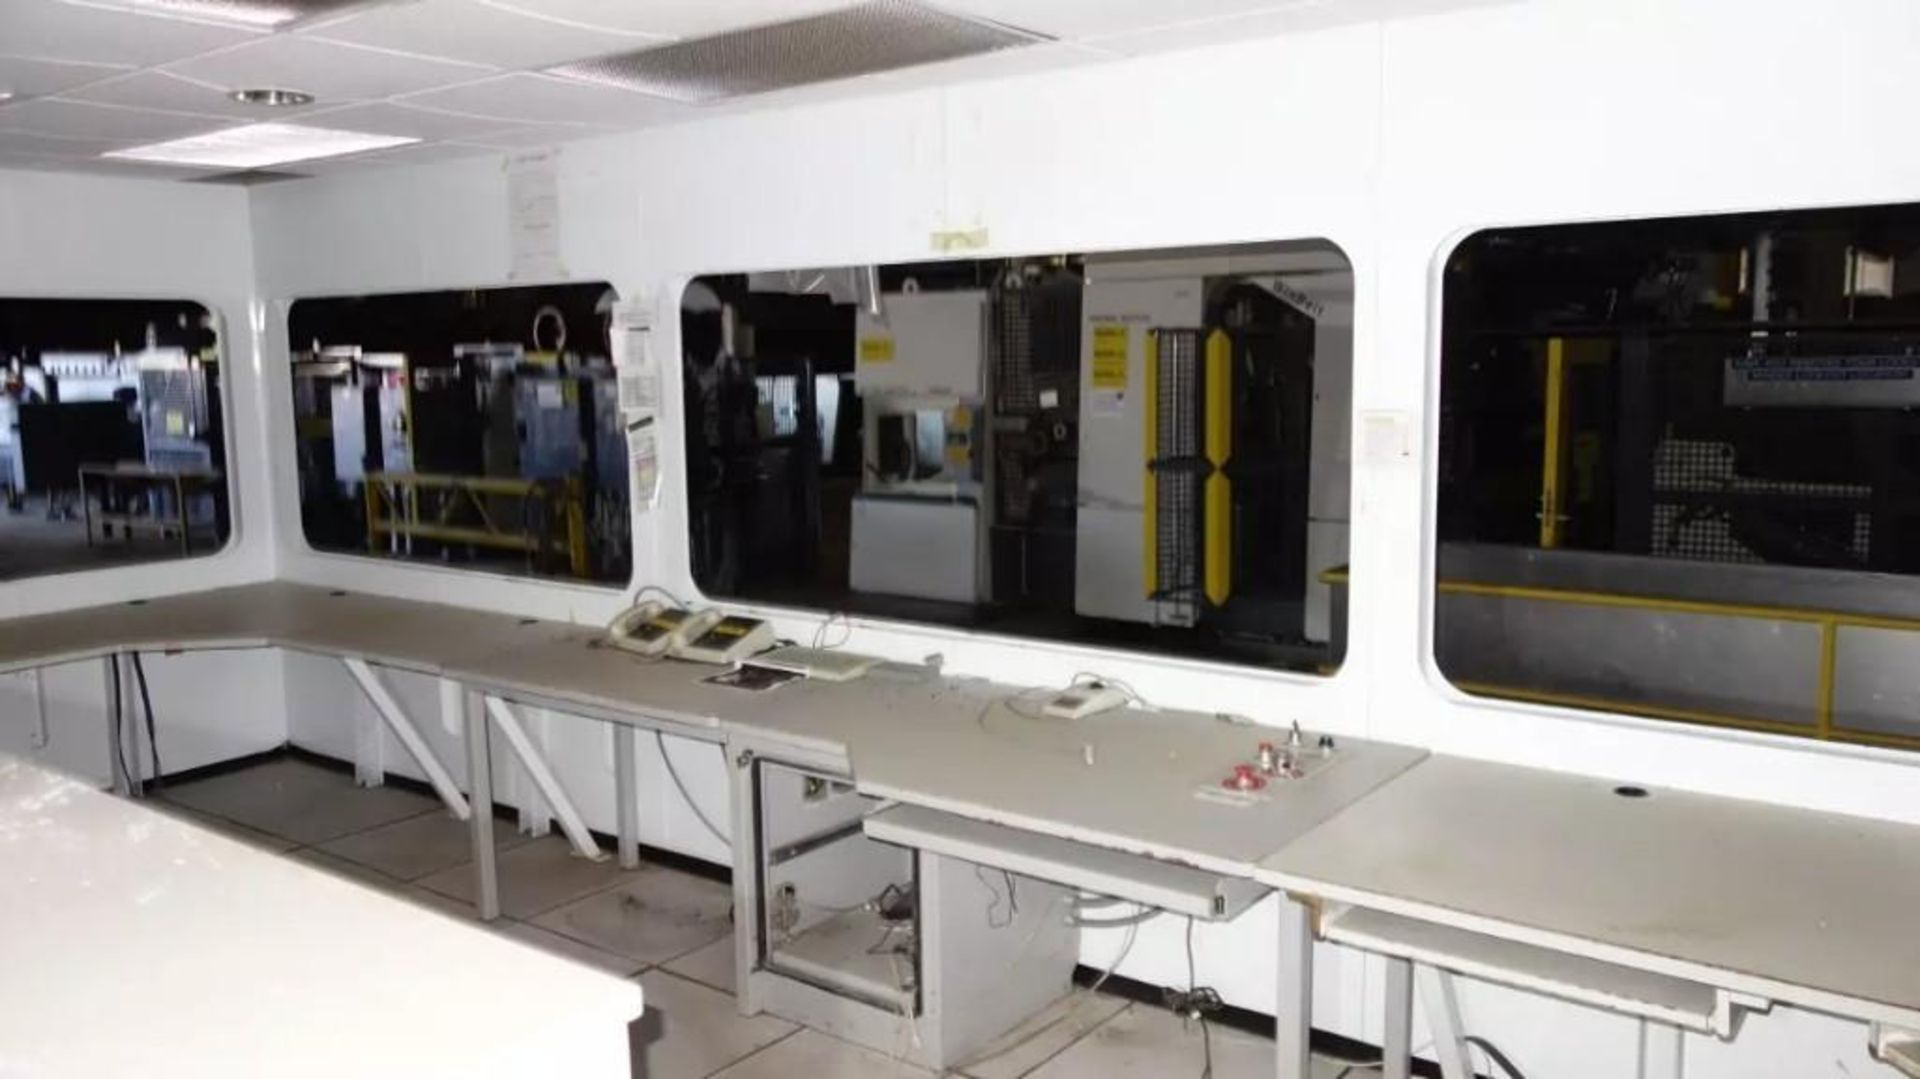 PREFABRICATED MODULAR OFFICE MECART COMMAND CENTER OFFICE WITH CONTENTS, 25X18FT (MISSING WINDOWS) - Image 2 of 11